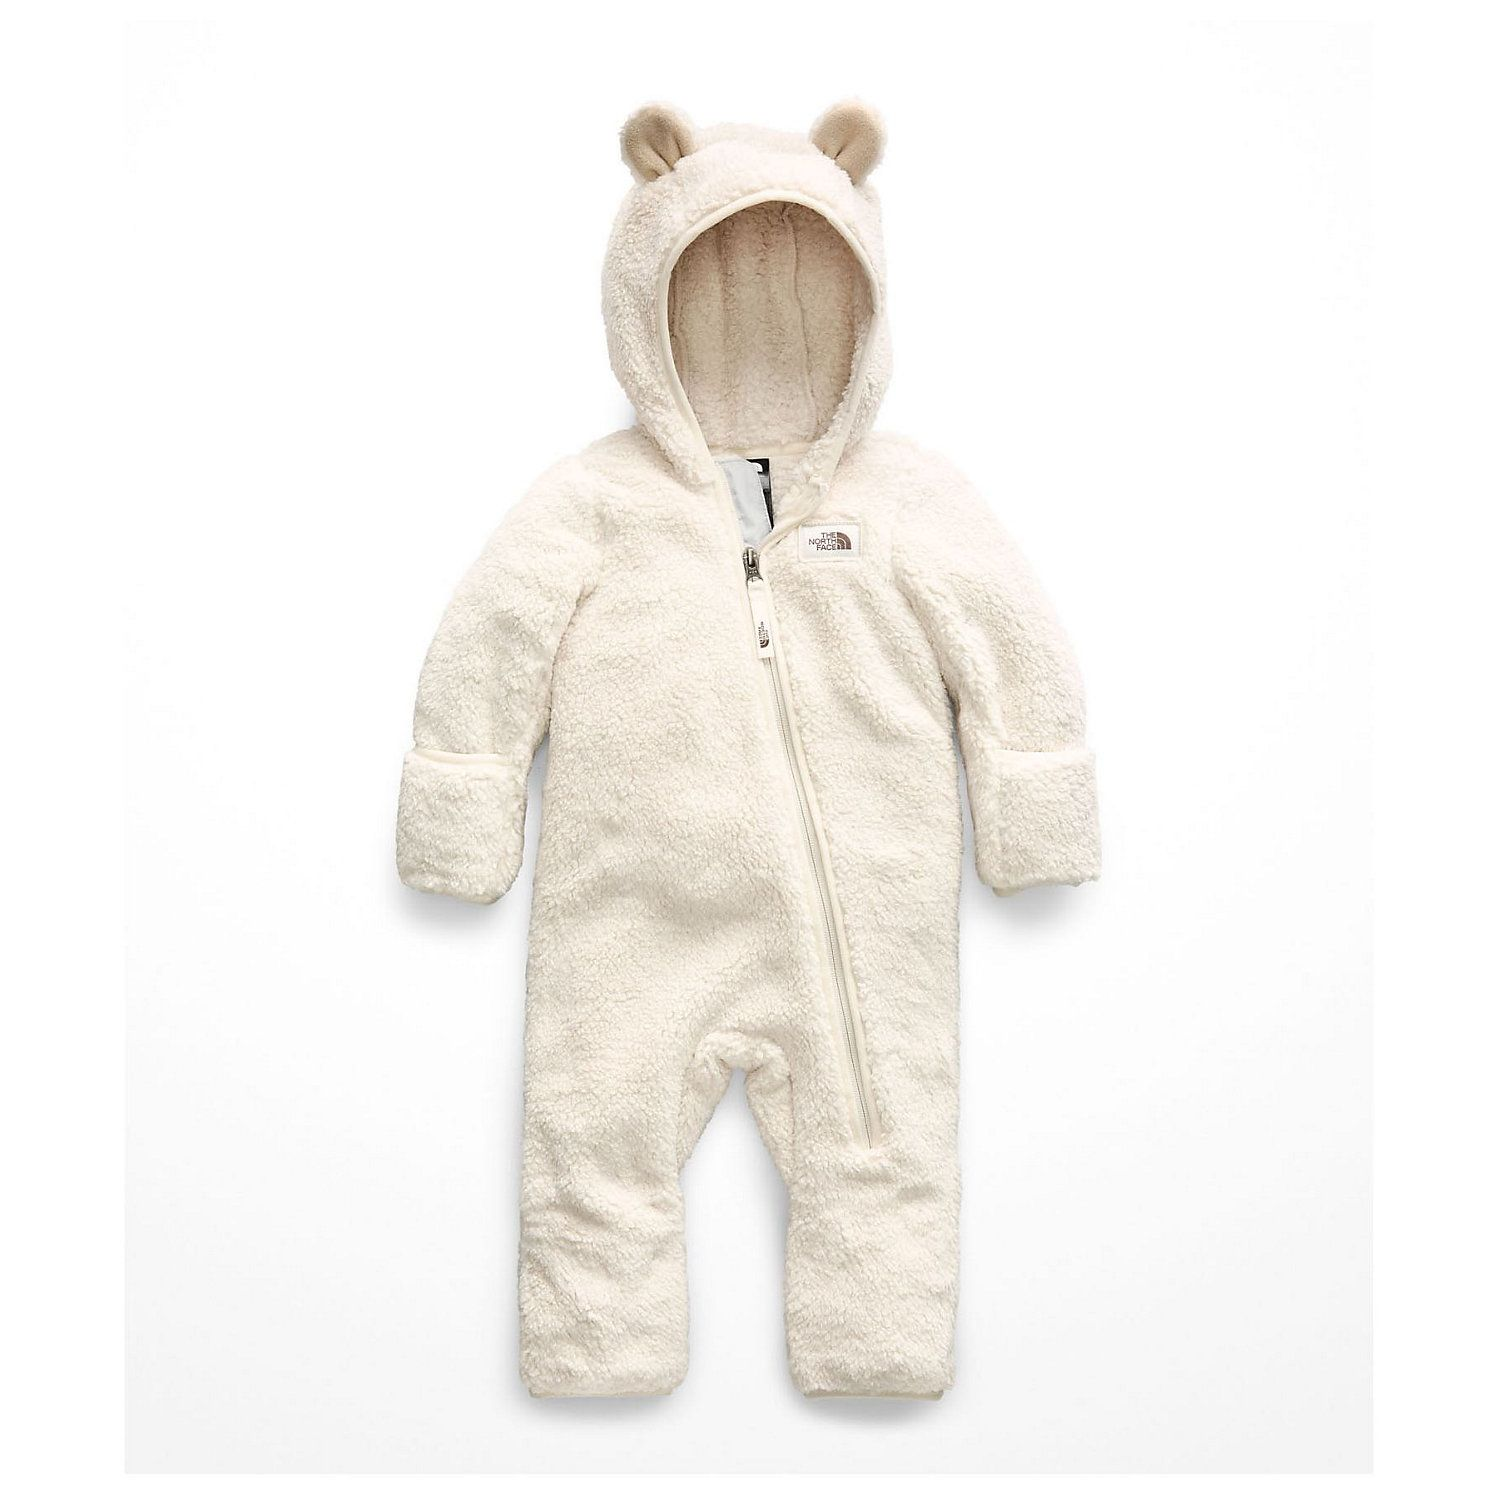 The North Face Infant Campshire One Piece Moosejaw The North Face Winter Jacket North Face North Face Brand [ 1500 x 1500 Pixel ]